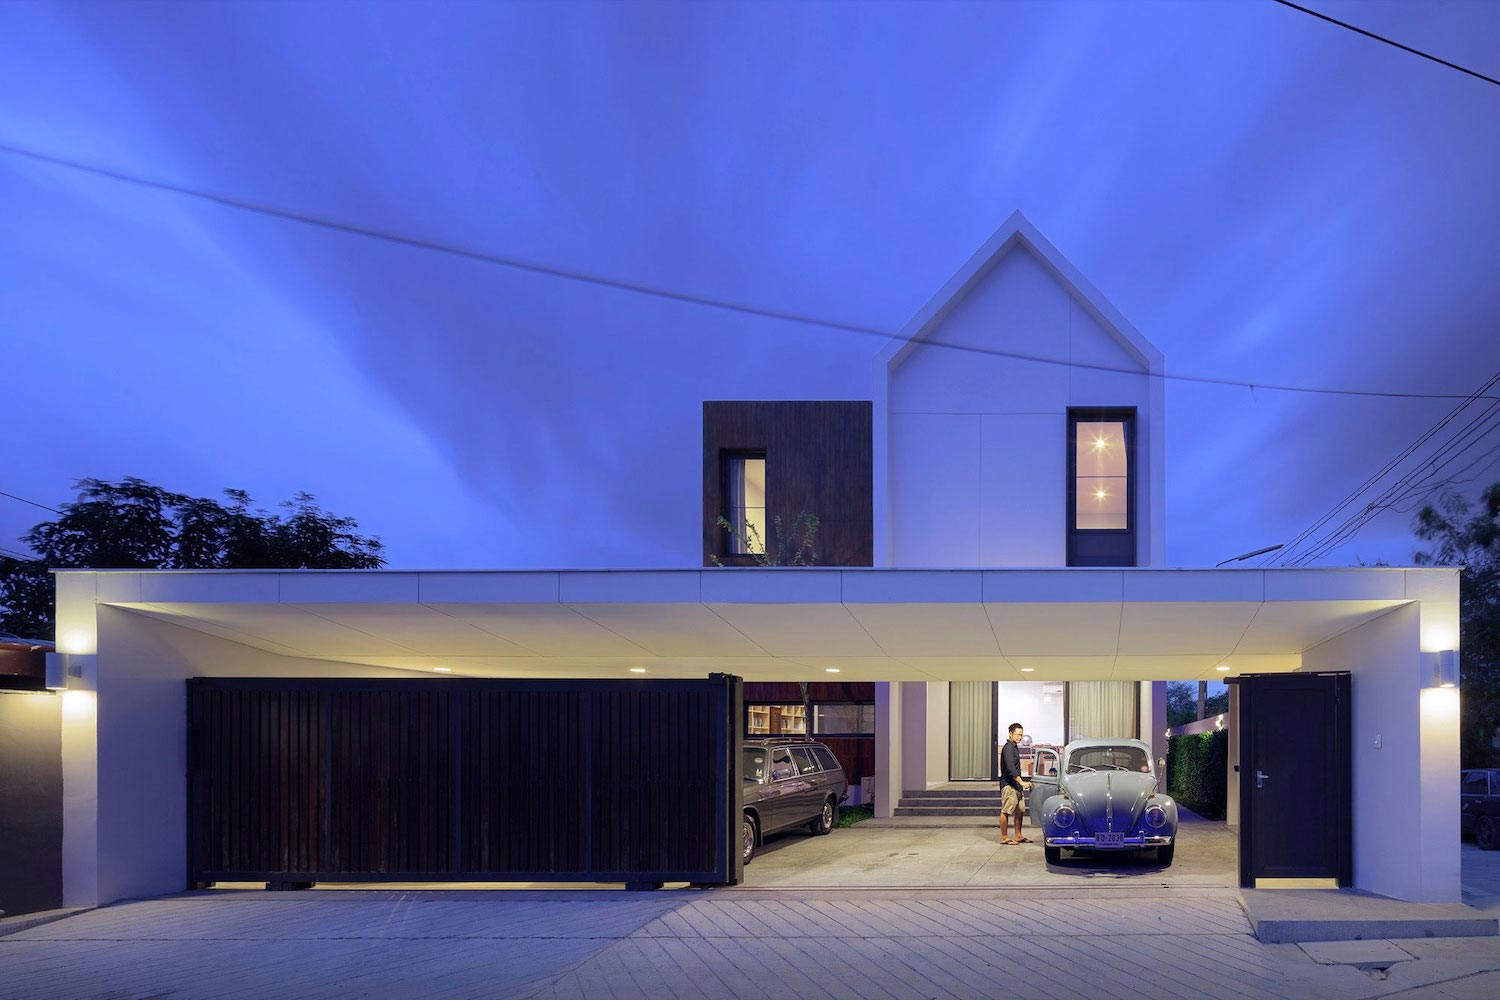 Nawamin 24 House A Contemporary Simple House In Bangkok By I Like Design Studio Caandesign